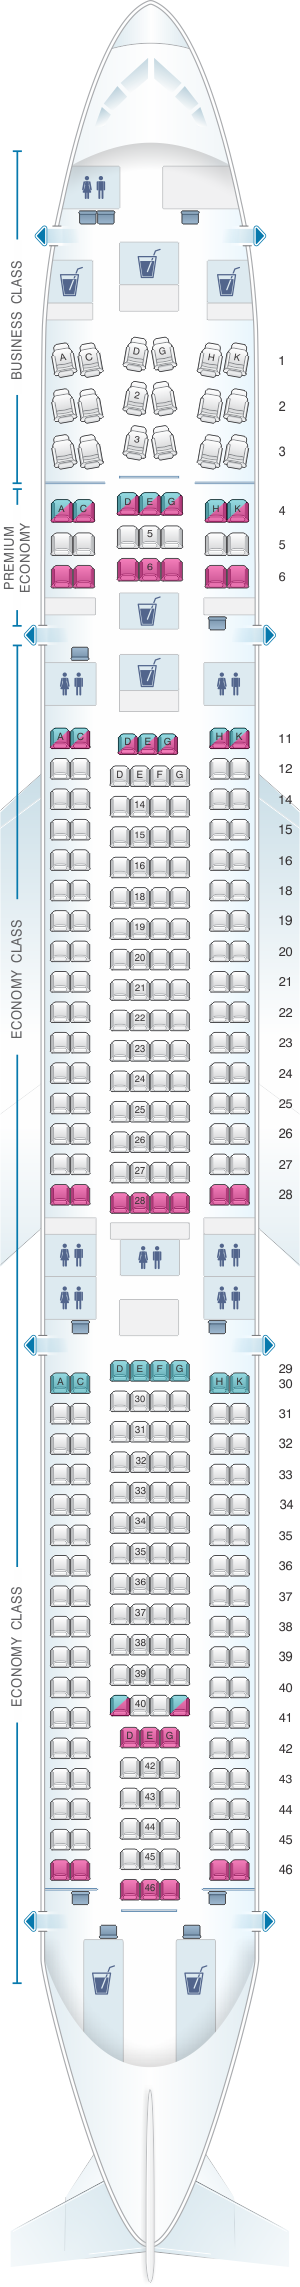 Seat map for Lufthansa Airbus A340 300 300pax